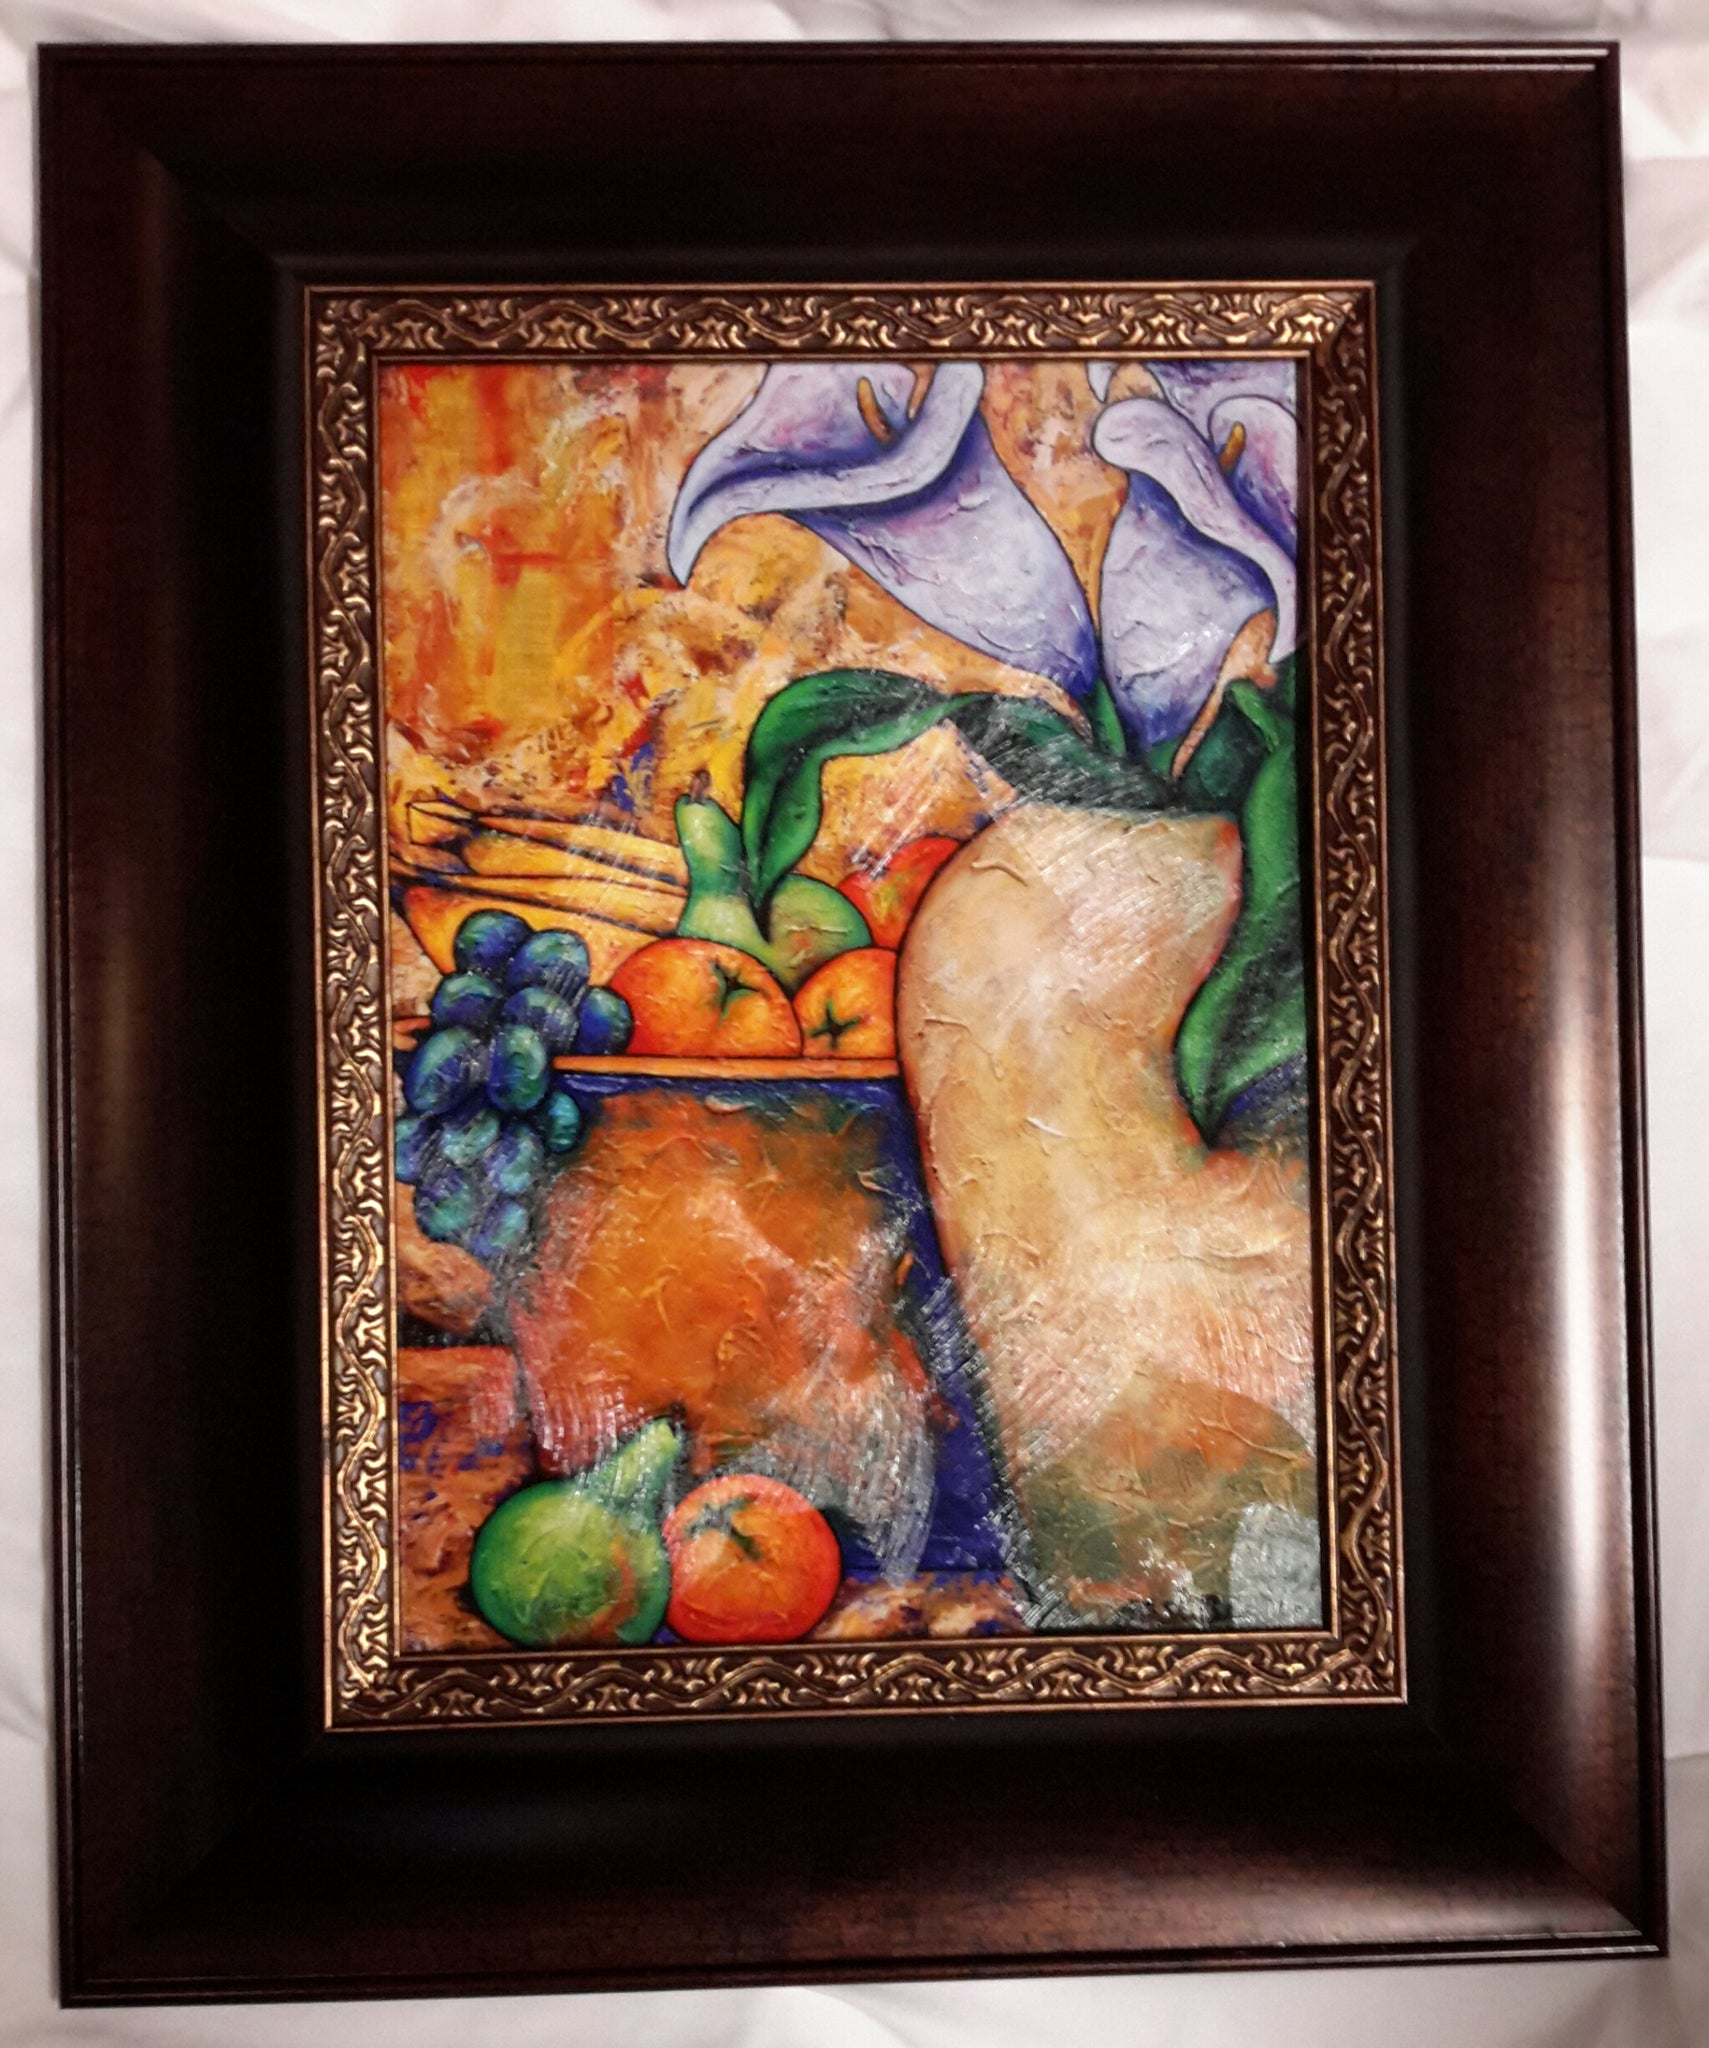 Lilies And Fruit #3 Framed Art - LaShunBeal.com